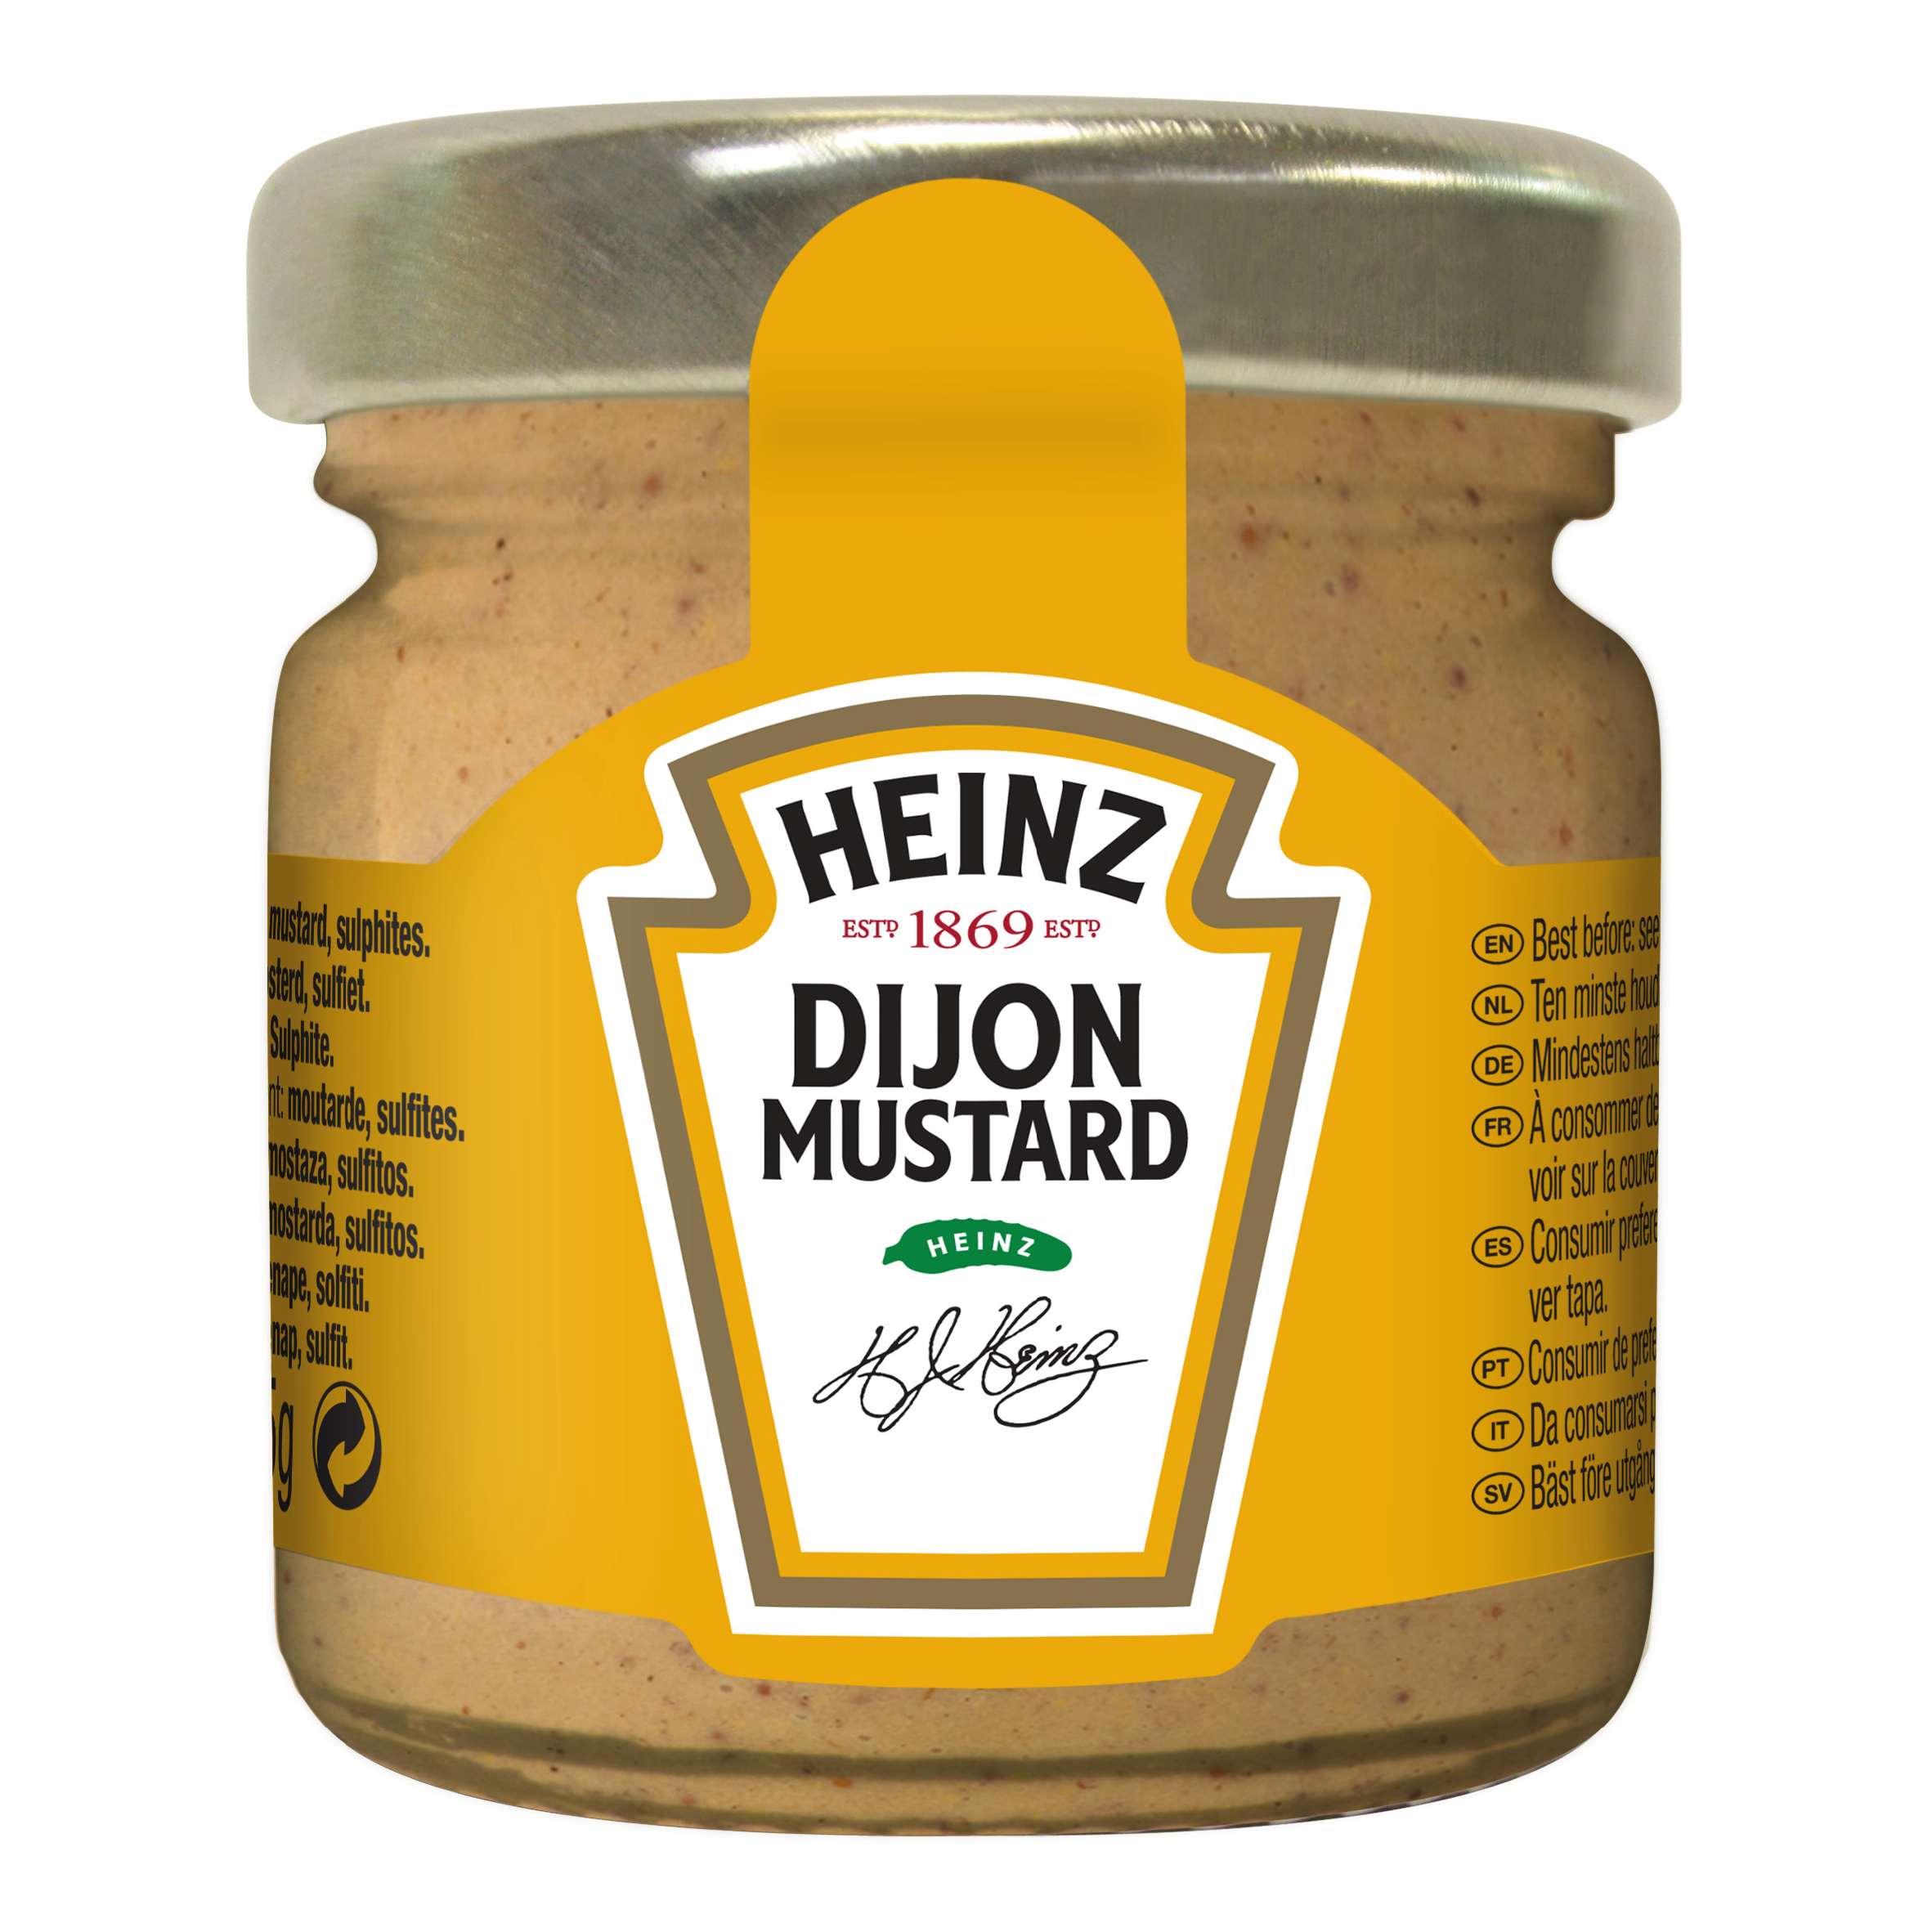 Heinz Dijon Mustard 33ml Premium Mini Jars